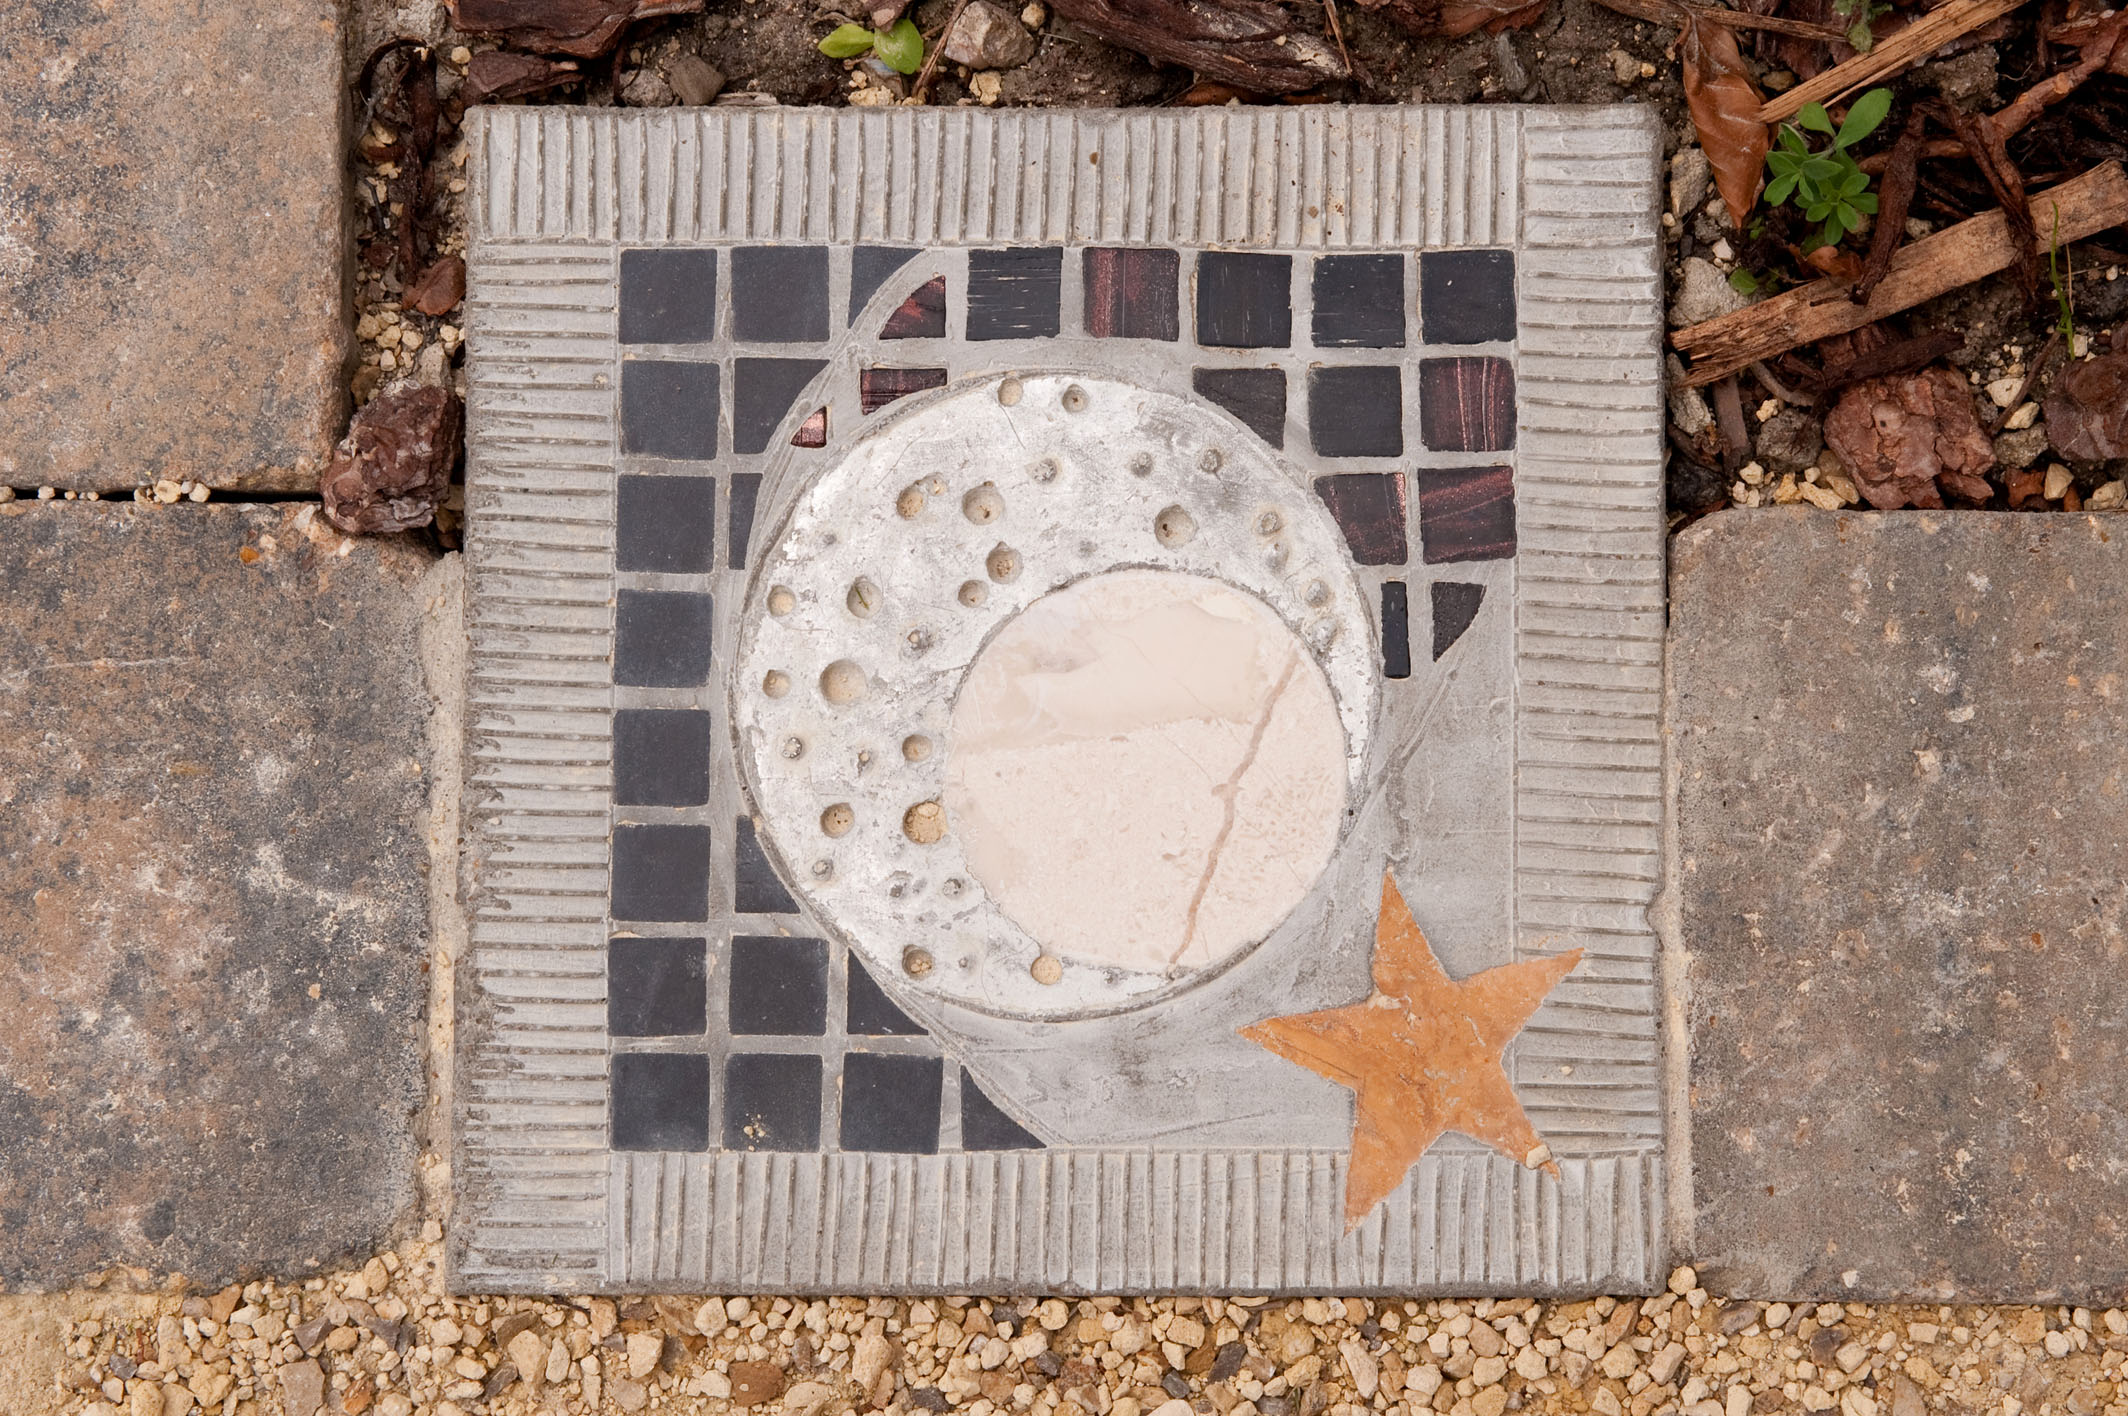 A close up of the Moon and Stars mosaic stepping stone path by David James, Olicana Mosaics.